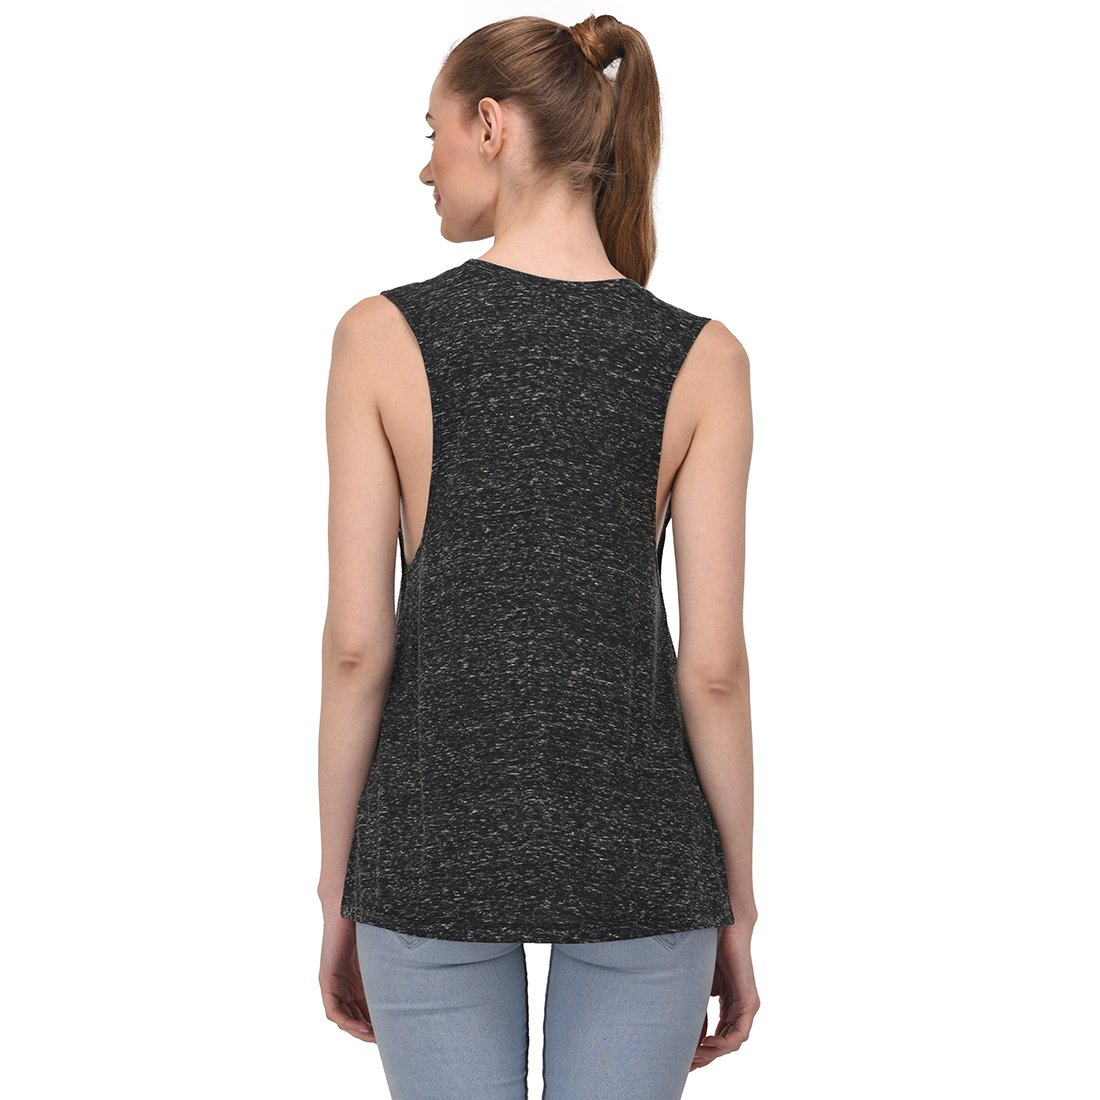 Black Marble Small Essentielle Women's Triblend Muscle Tank Top